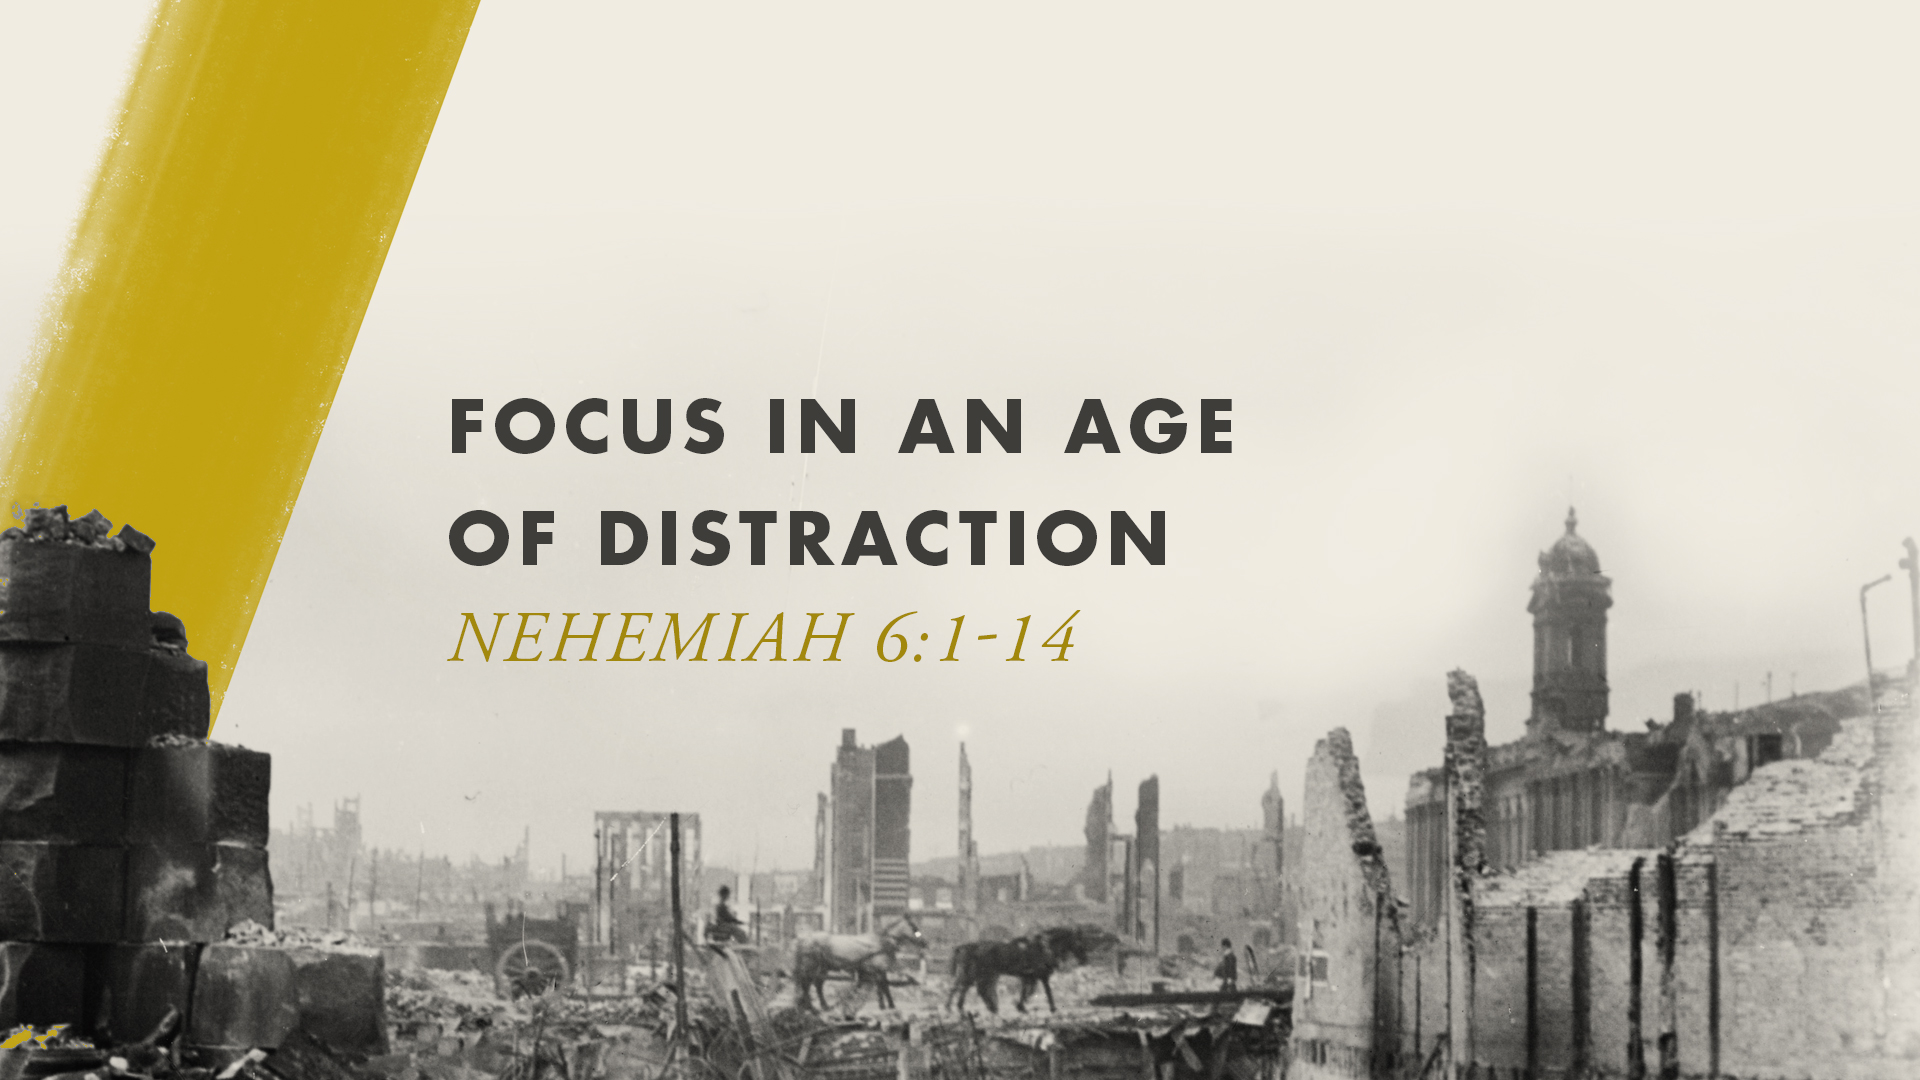 Focus in an Age of Distraction